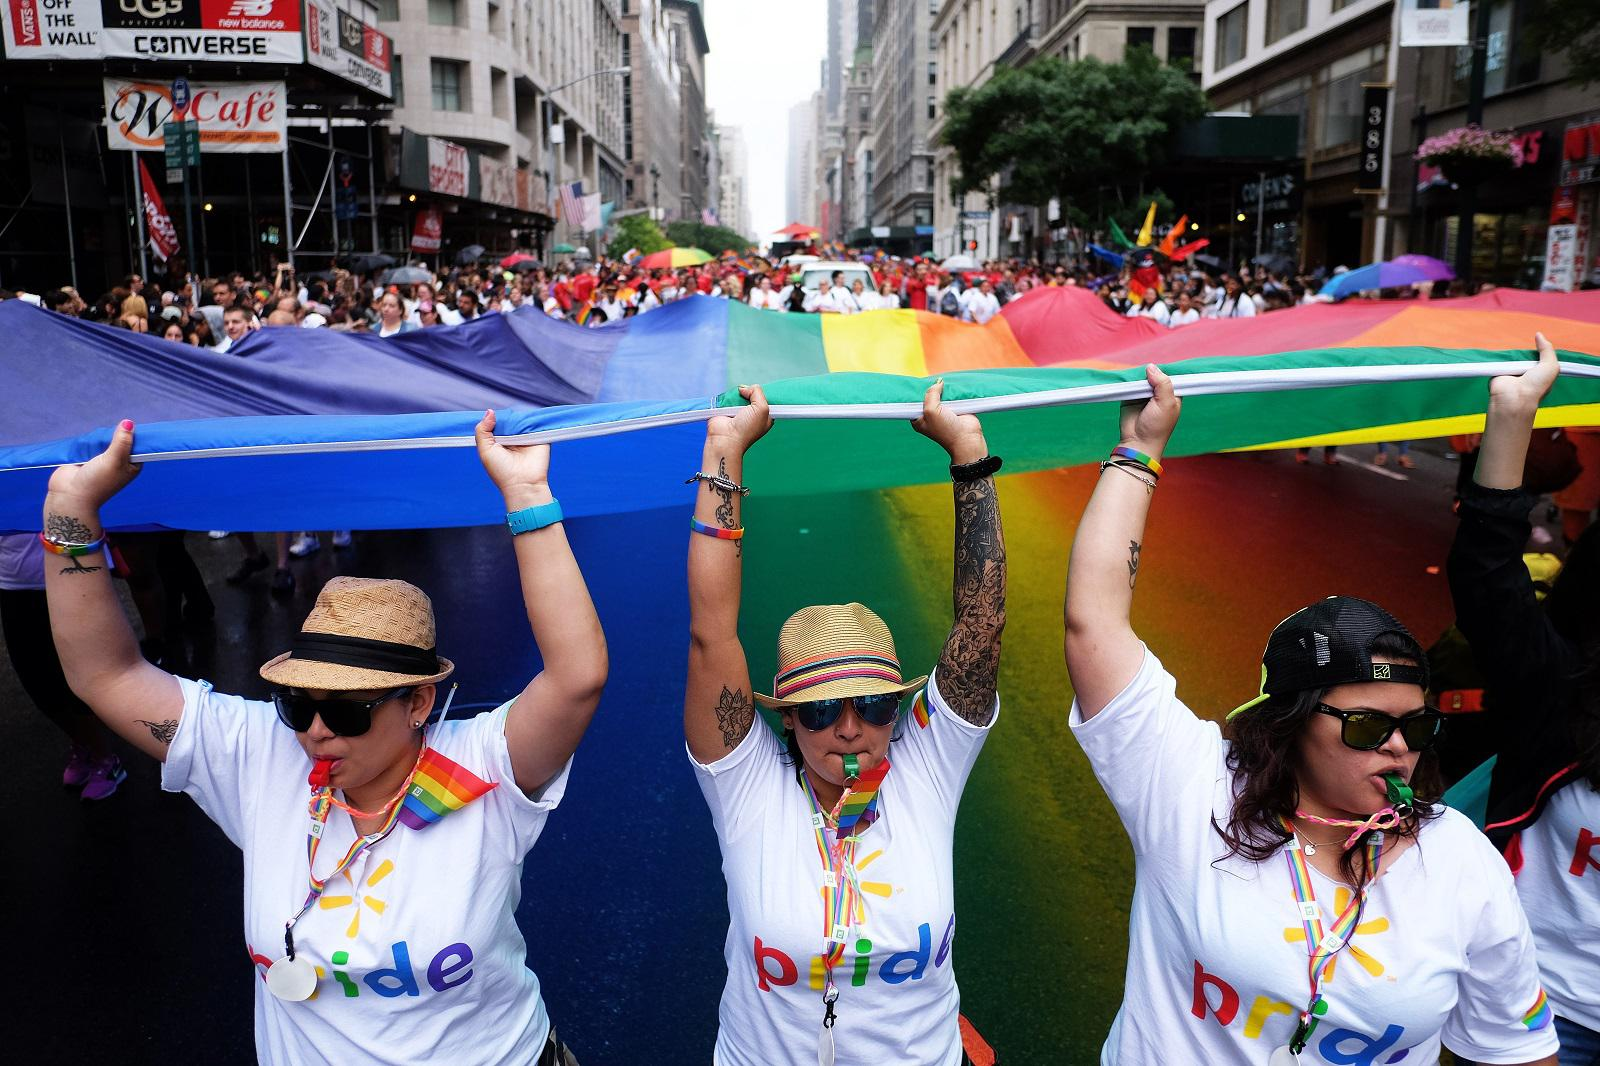 Gay Rights May Come at the Cost of Religious Freedom